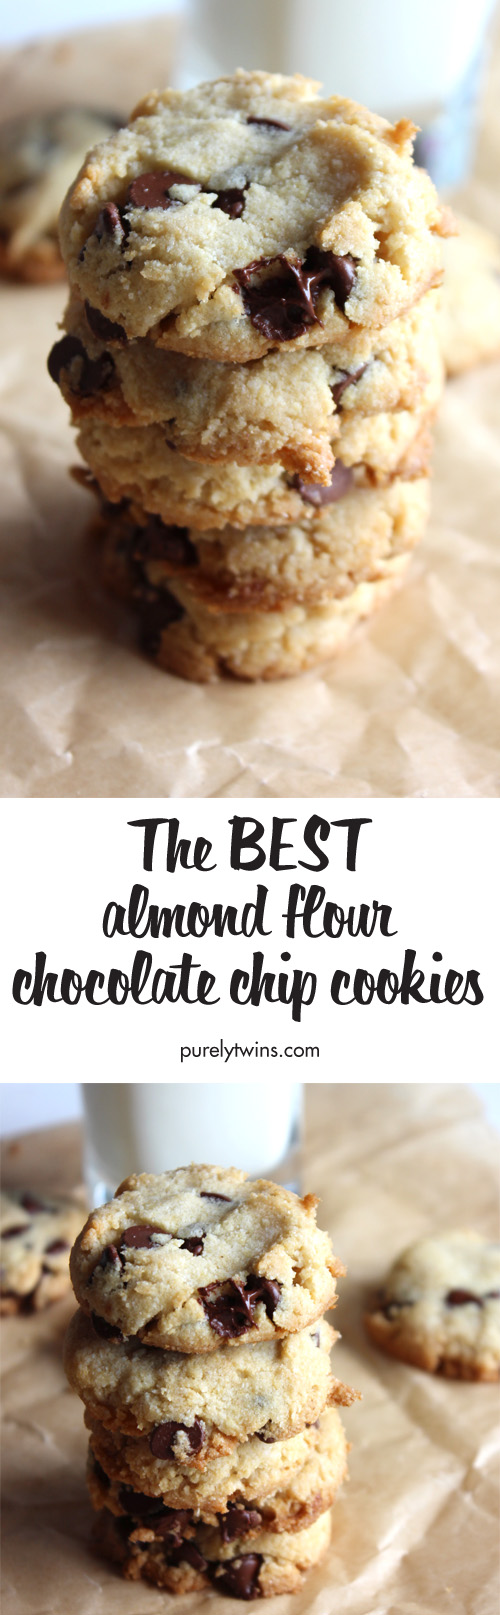 The BEST almond and coconut flour chocolate chip cookies. Super easy to make and taste incredible. Soft and chewy gluten-free grain-free chocolate chip cookie recipe your whole family will love.